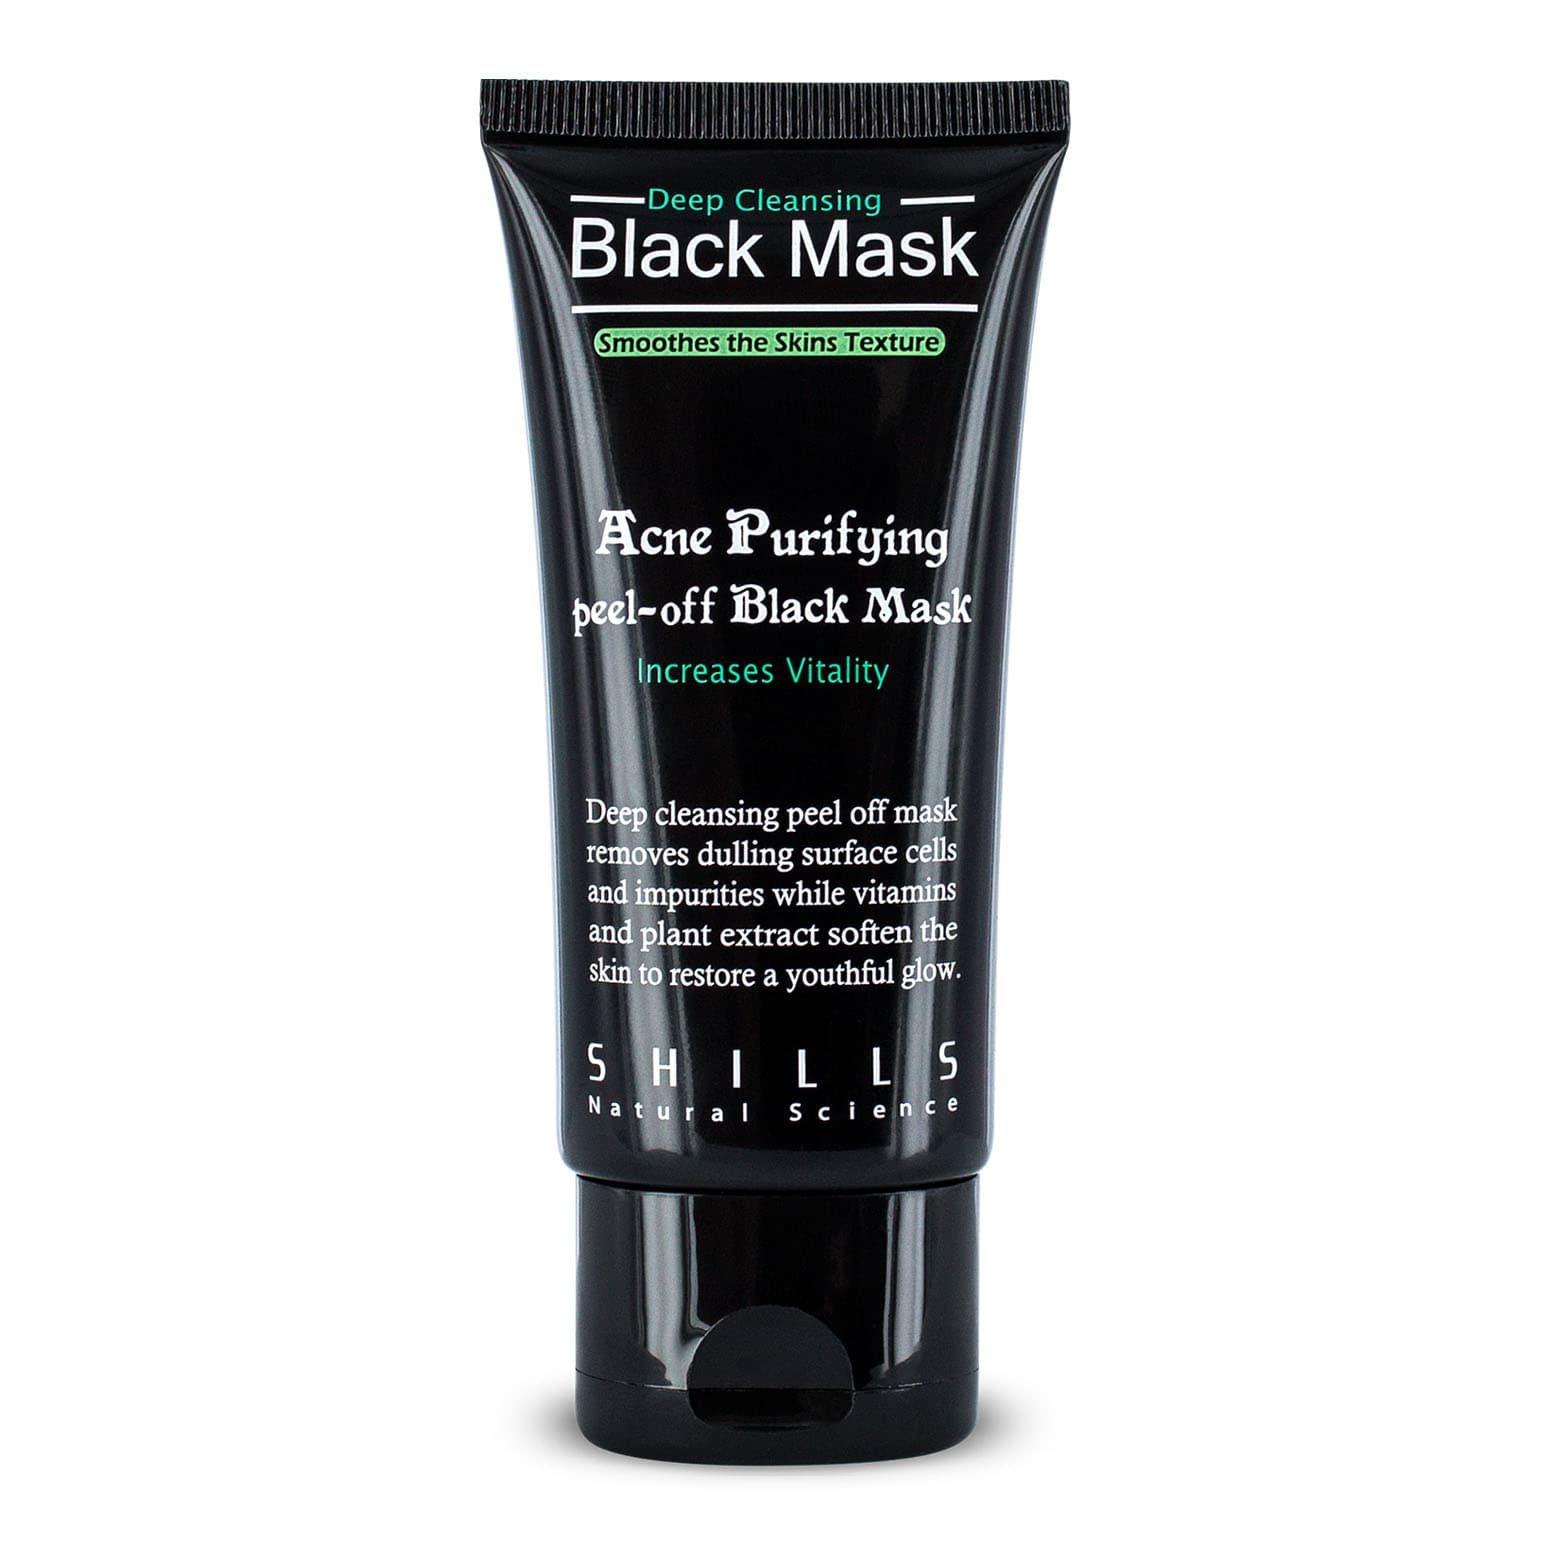 acne-purifying-black-peel-off-mask-1